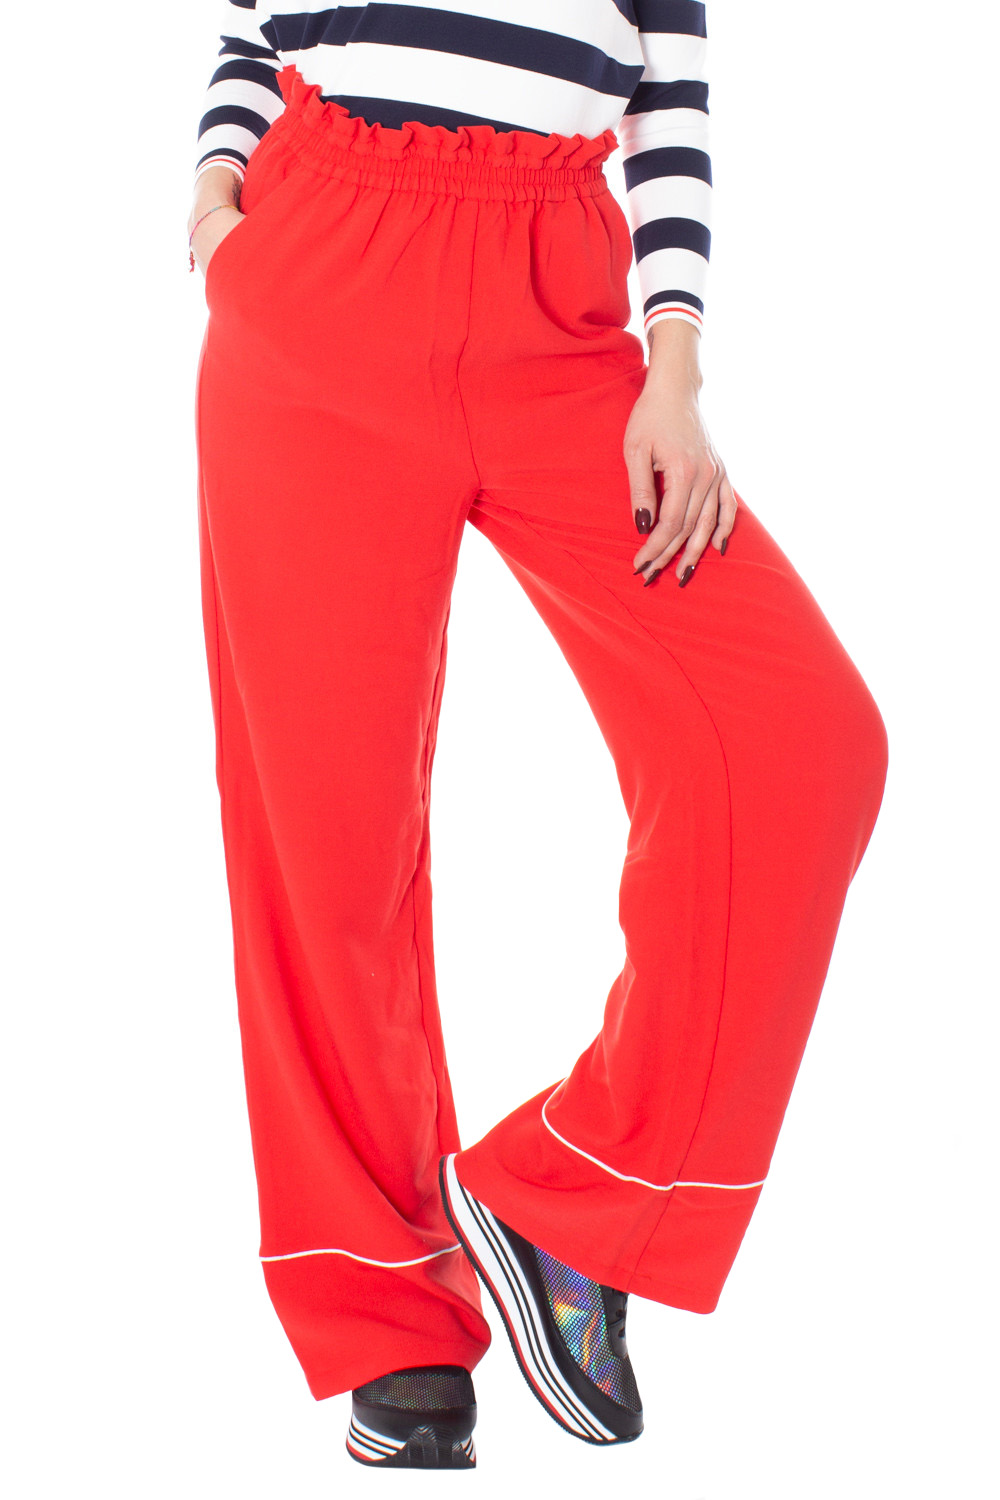 WH7_27786146_Rosso